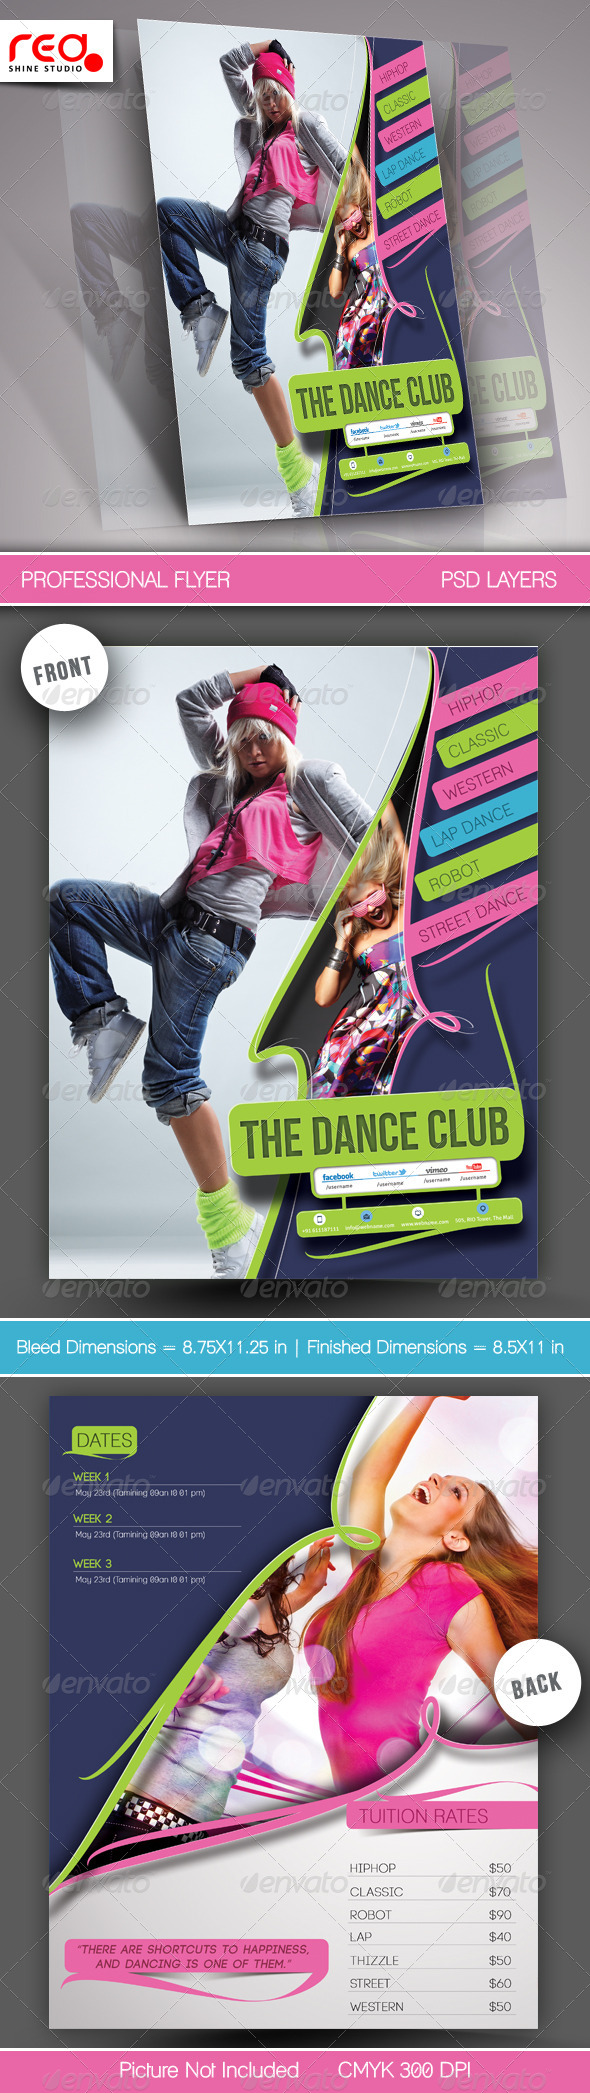 GraphicRiver Dance Academy Flyer & Poster Template 2 5985154